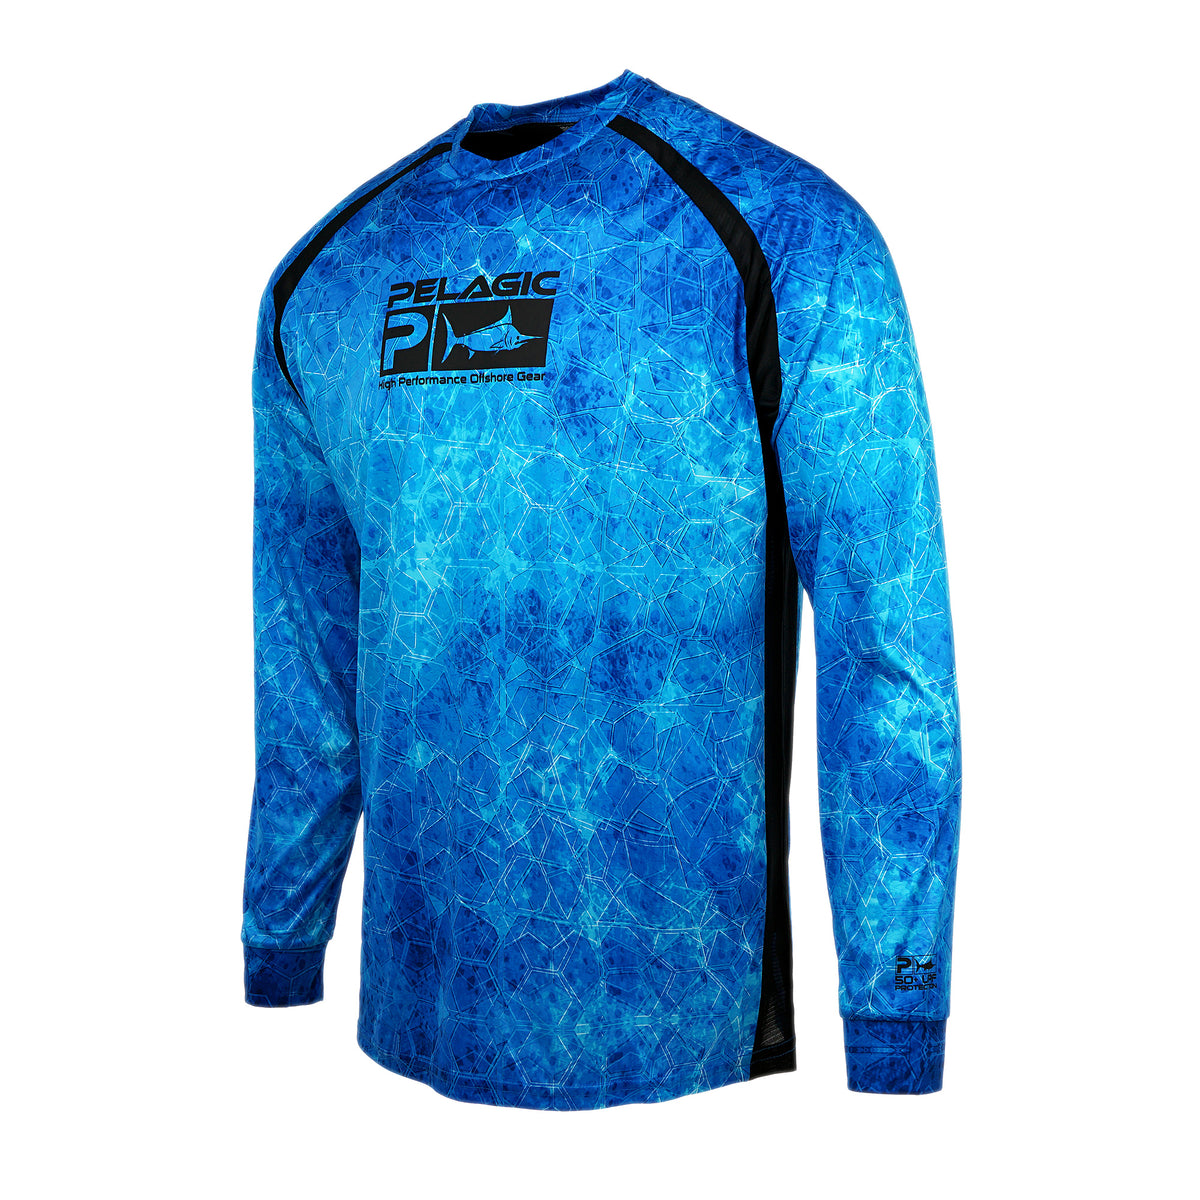 Vaportek Long Sleeve Performance Shirt Big Image - 1